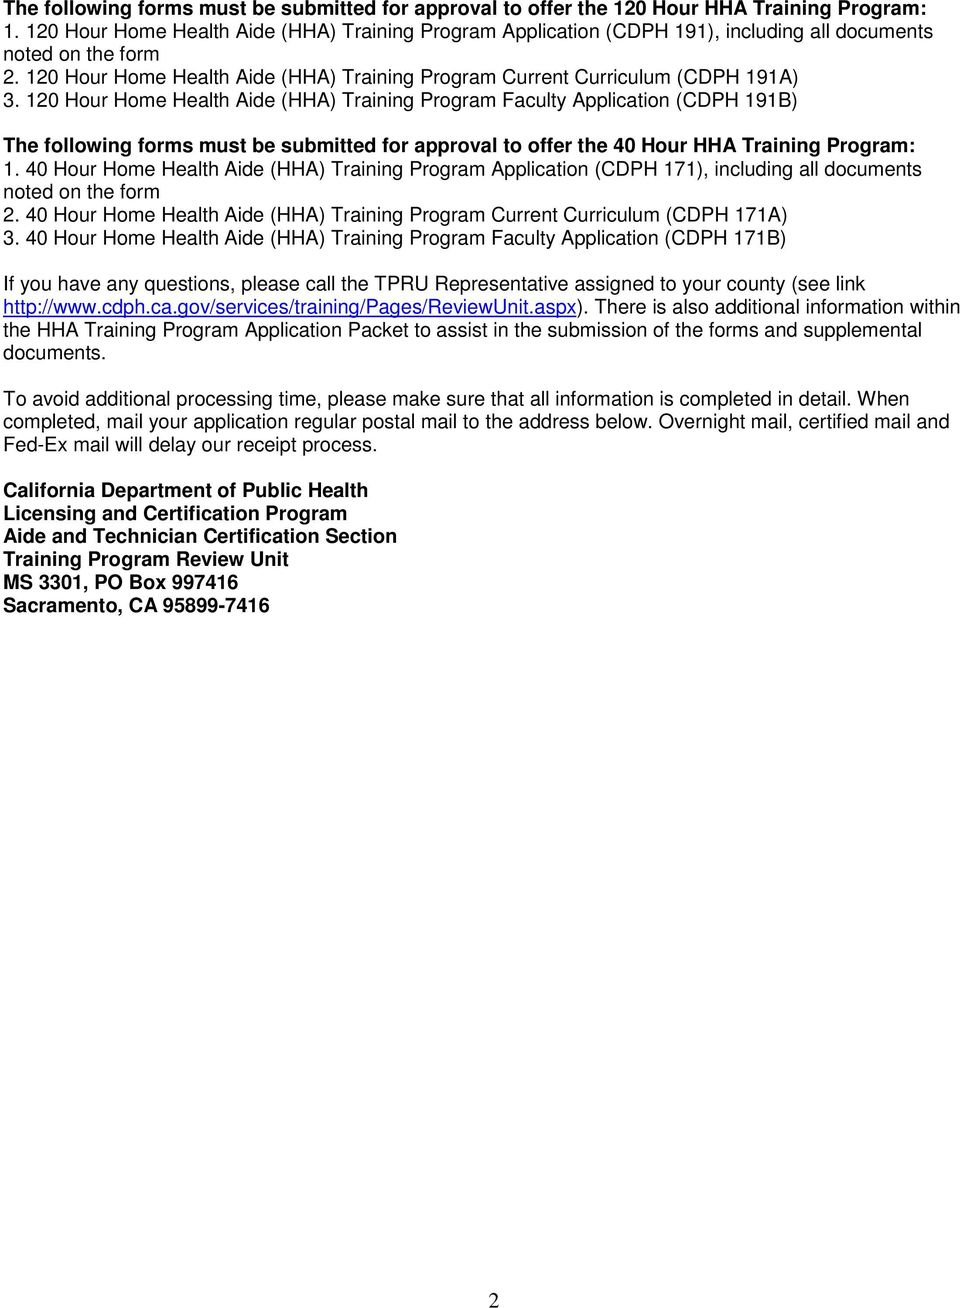 State Of California Health And Human Services Agency California